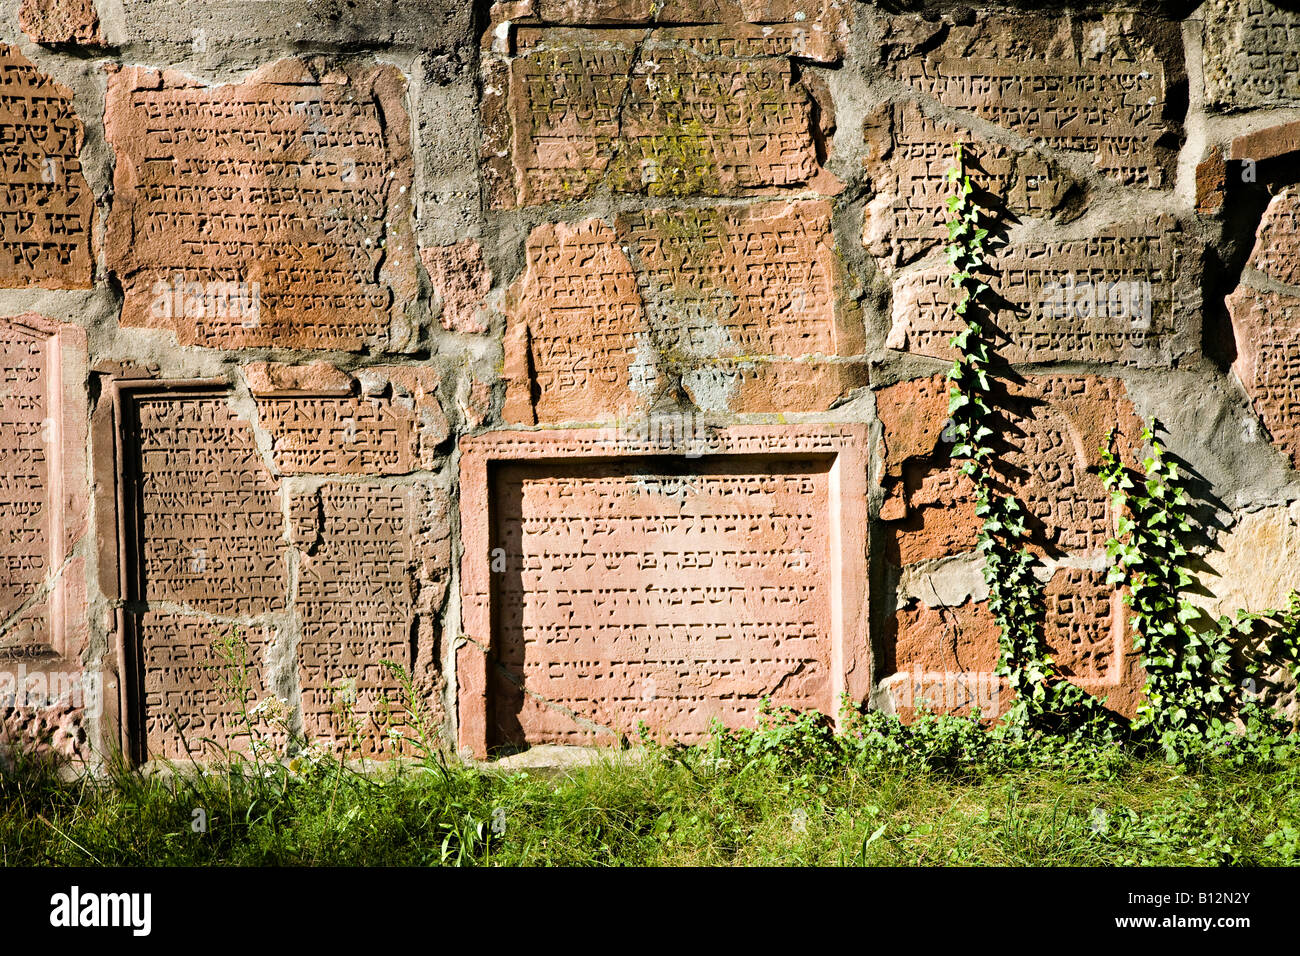 Memorial wall with Hebrew writing in Jewish cemetery the Alter Judenfriedhof or Herliger Sand Worms Germany - Stock Image